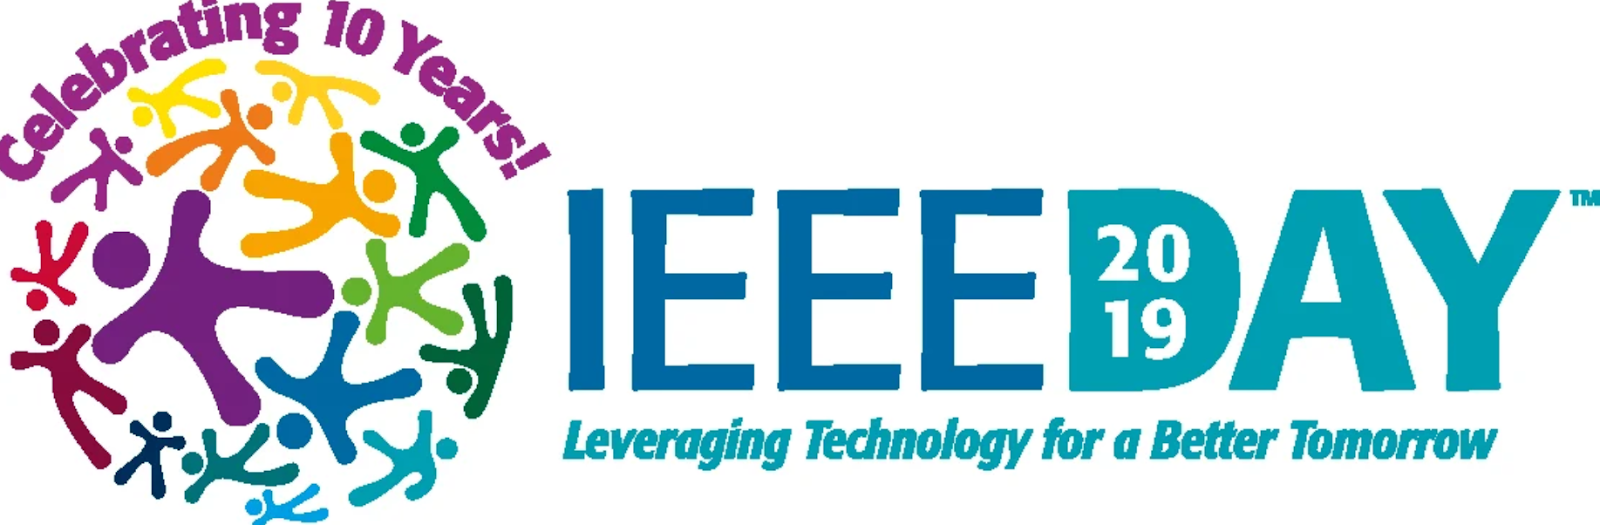 IEEE Day 2019 Image